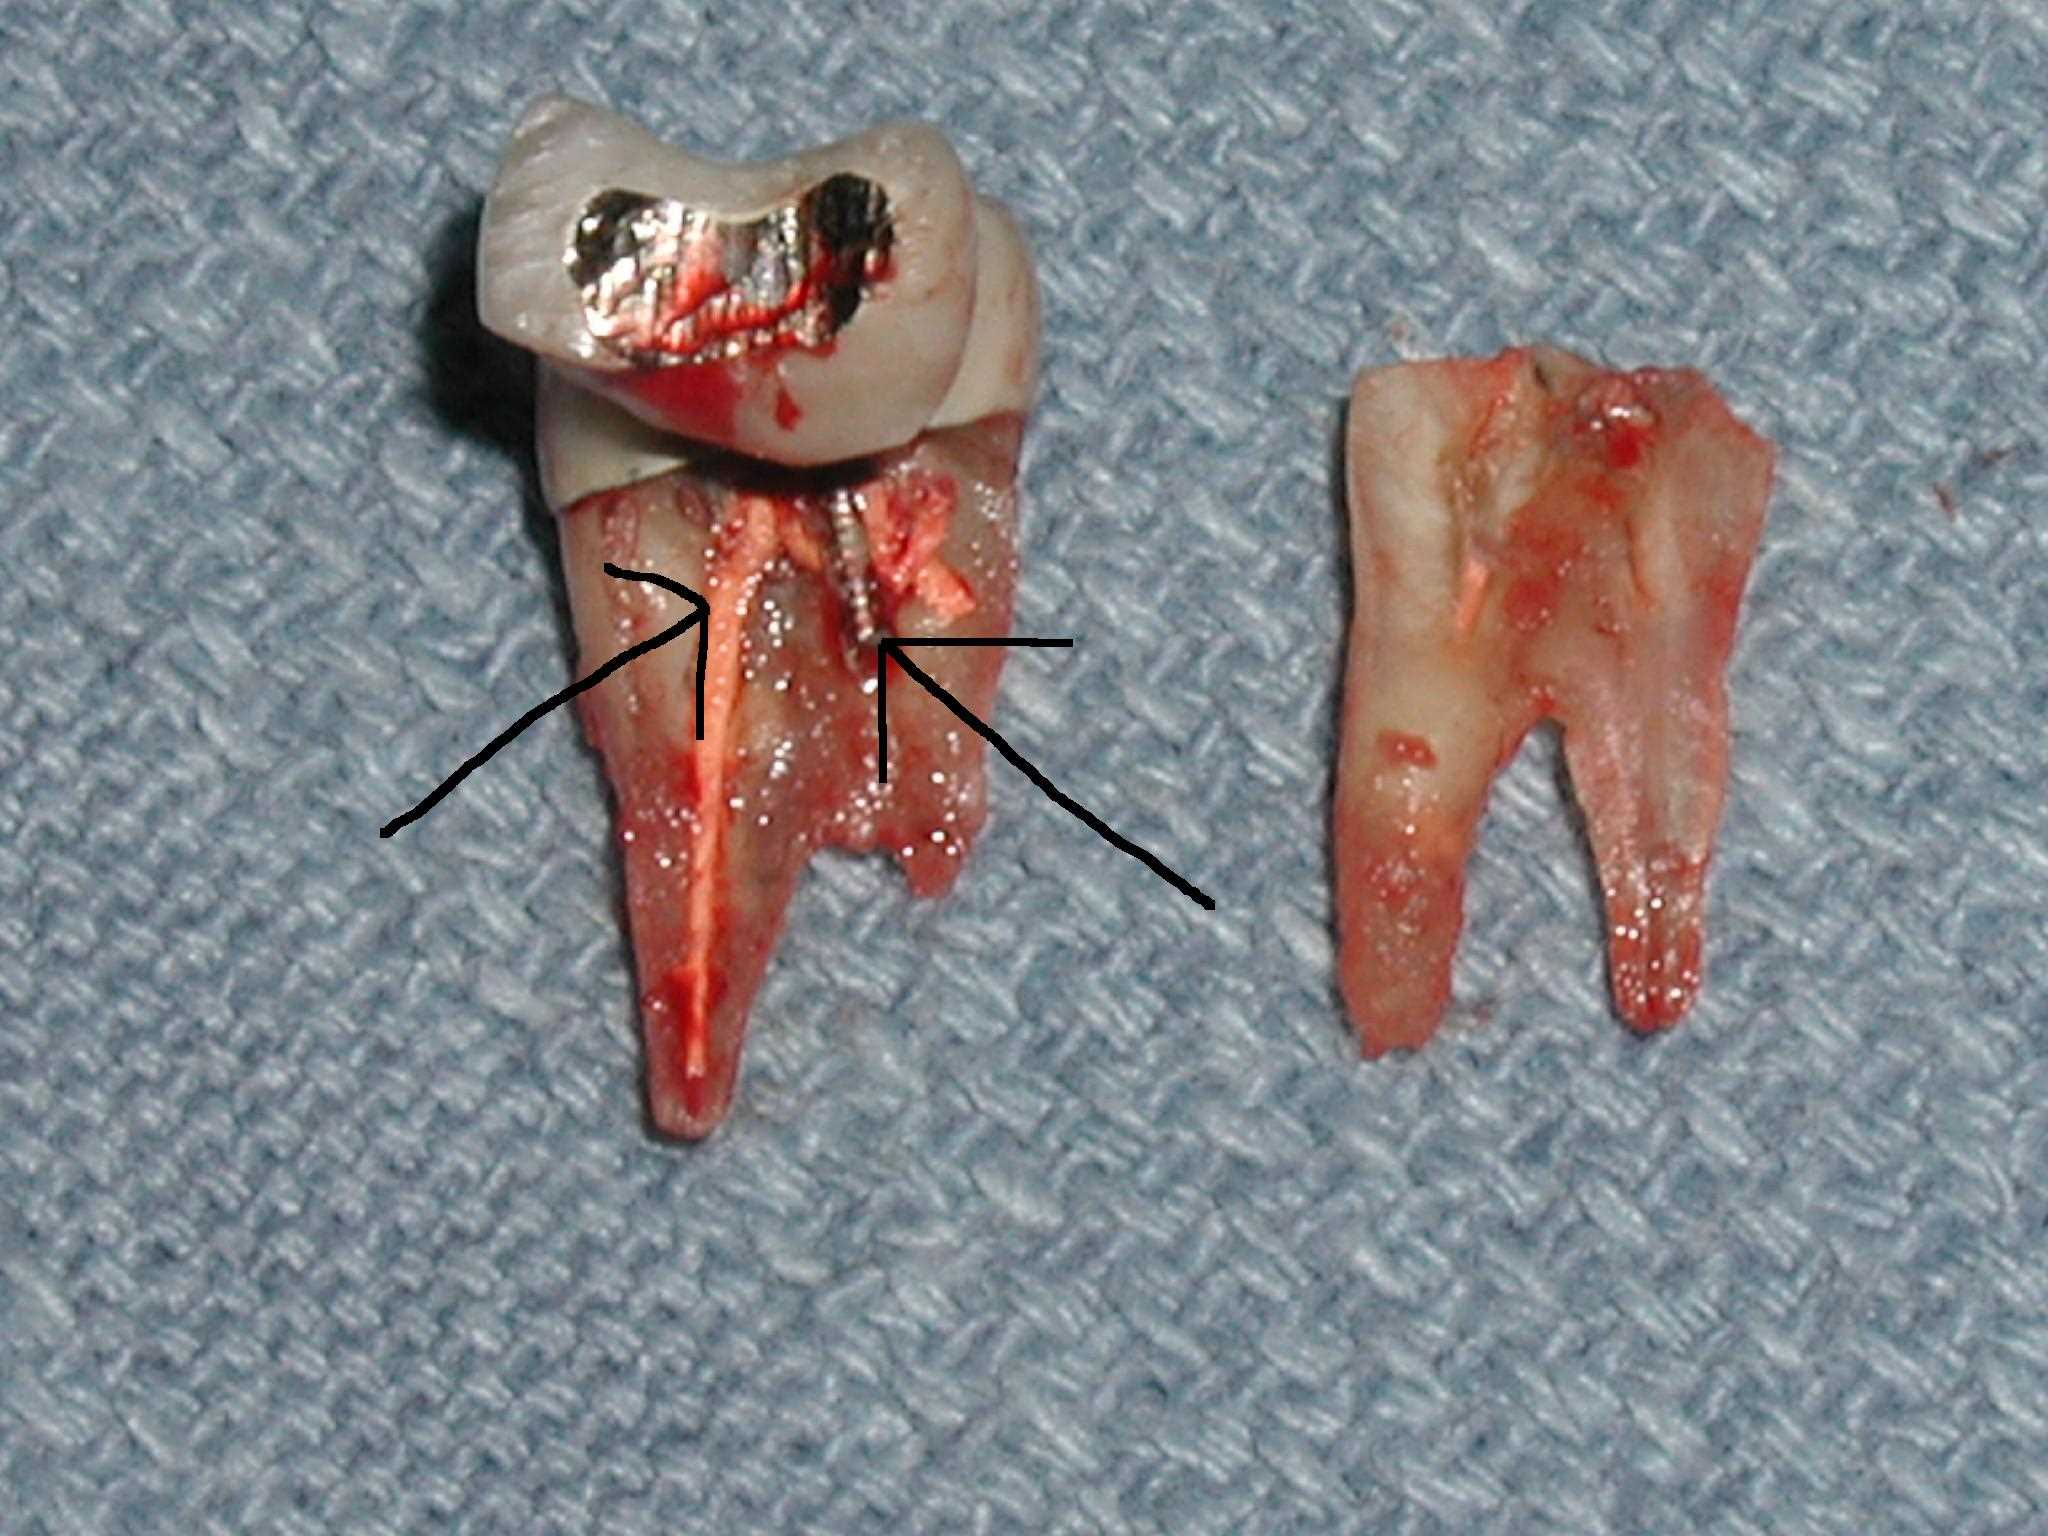 Root Canal Tooth Why Do Root Canals Fail Dr Caputo Palm Harbor Dentist